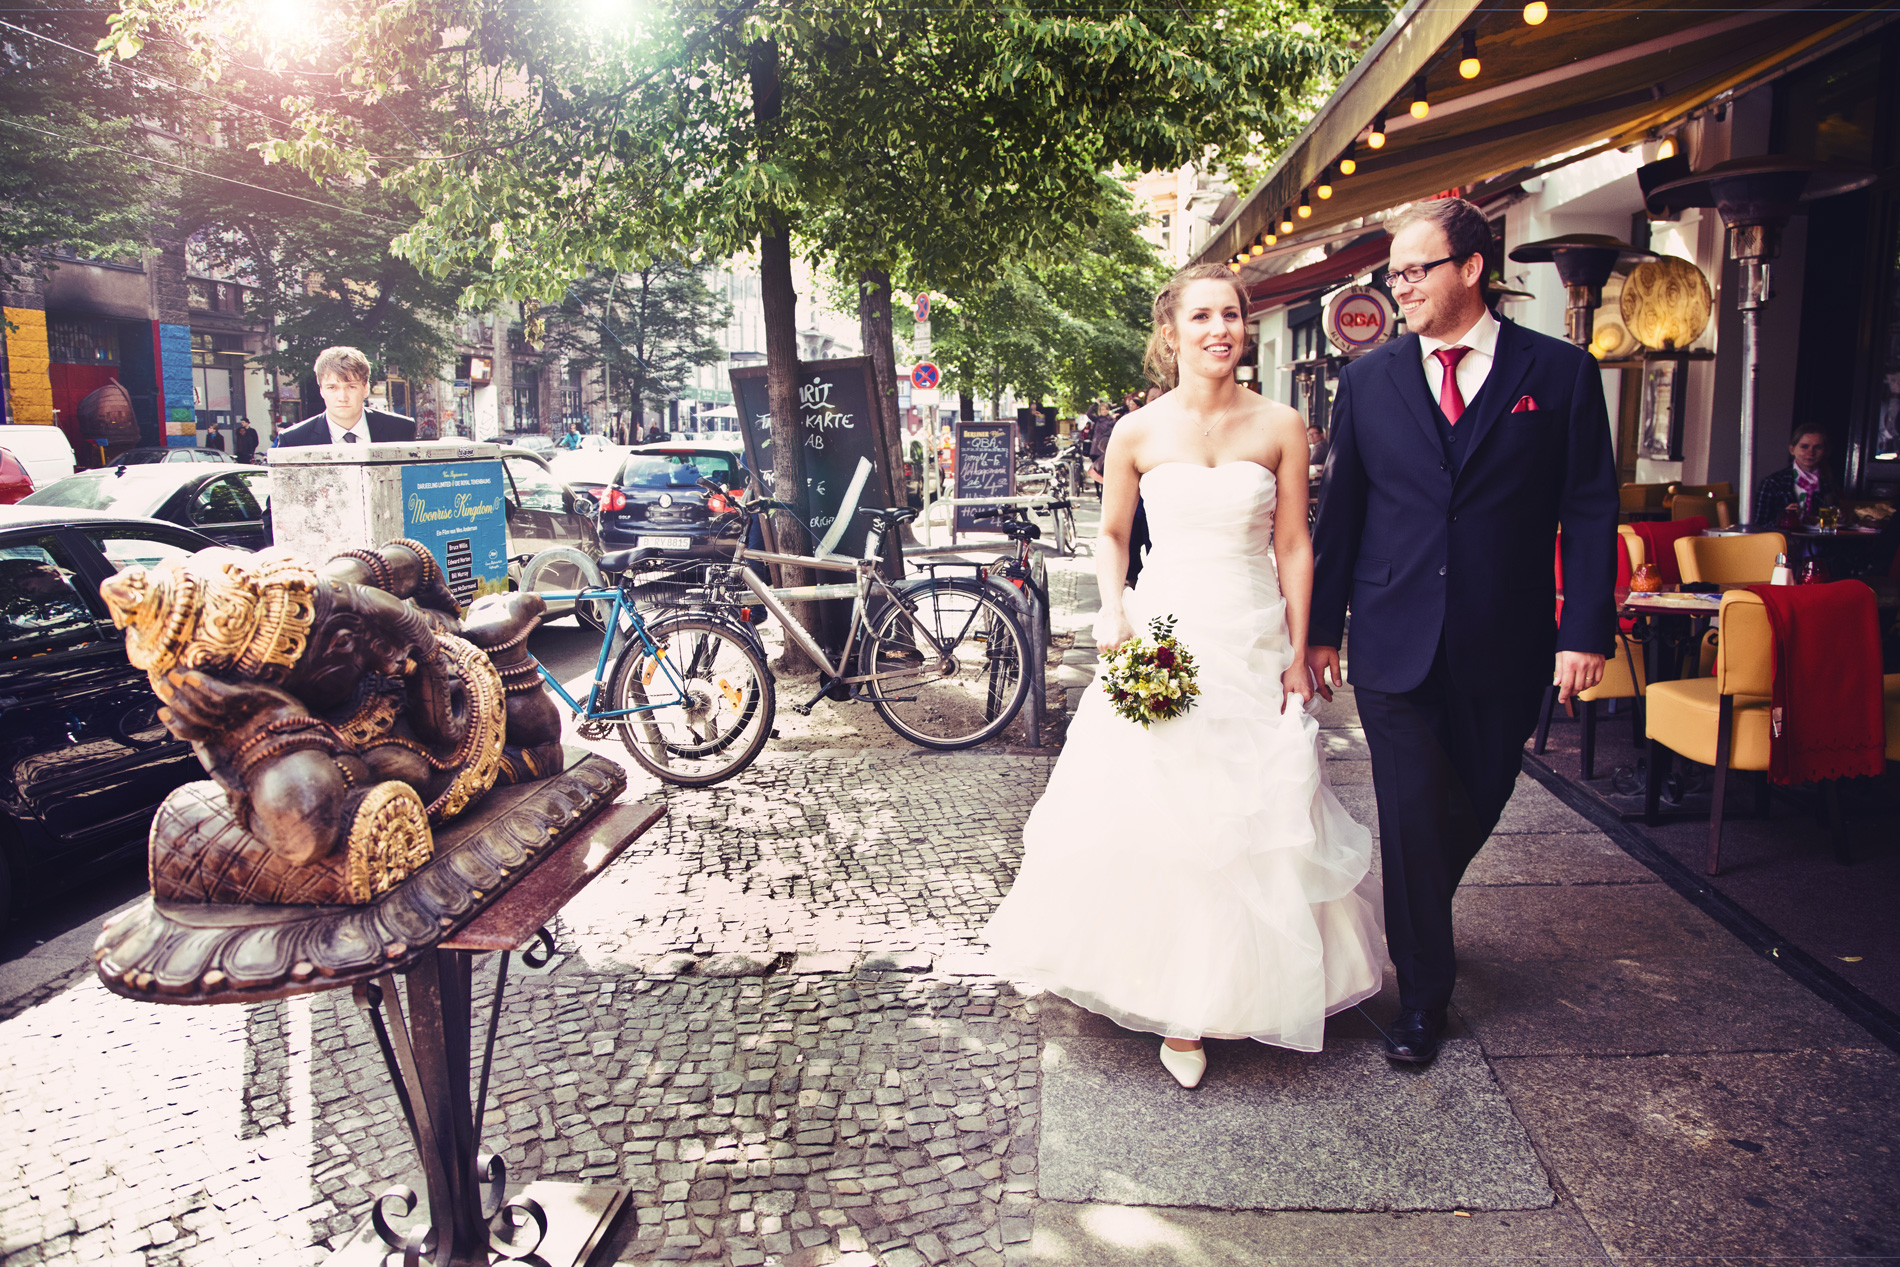 Kindergeldkasse berlin wedding